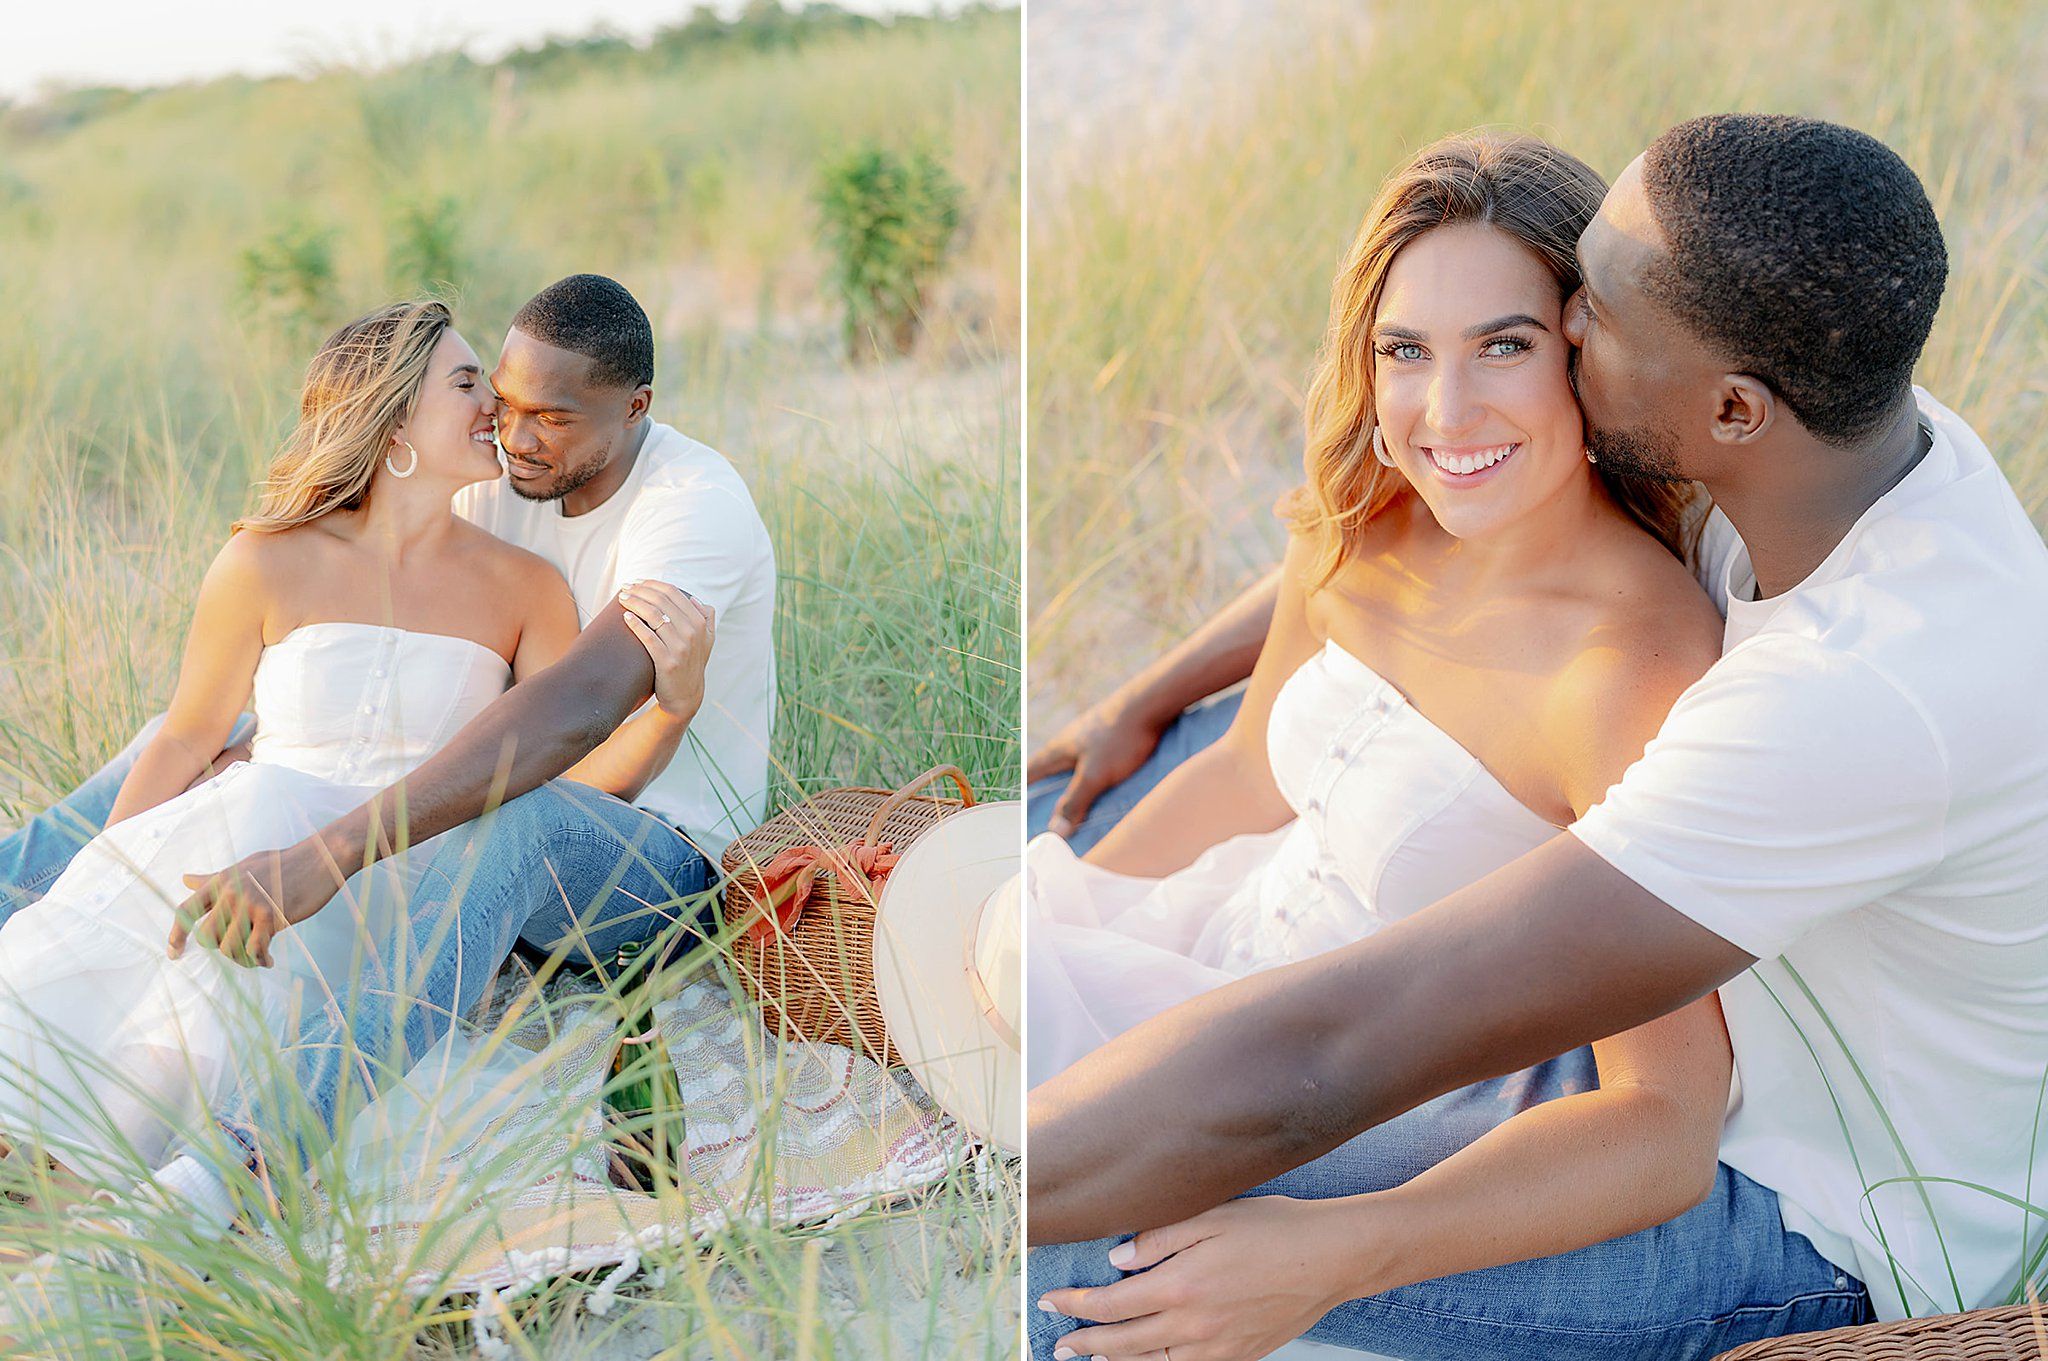 Willow Creek Winery Cape May New Jersey Engagement Session Photography by Magdalena Studios JessieLandry 0031